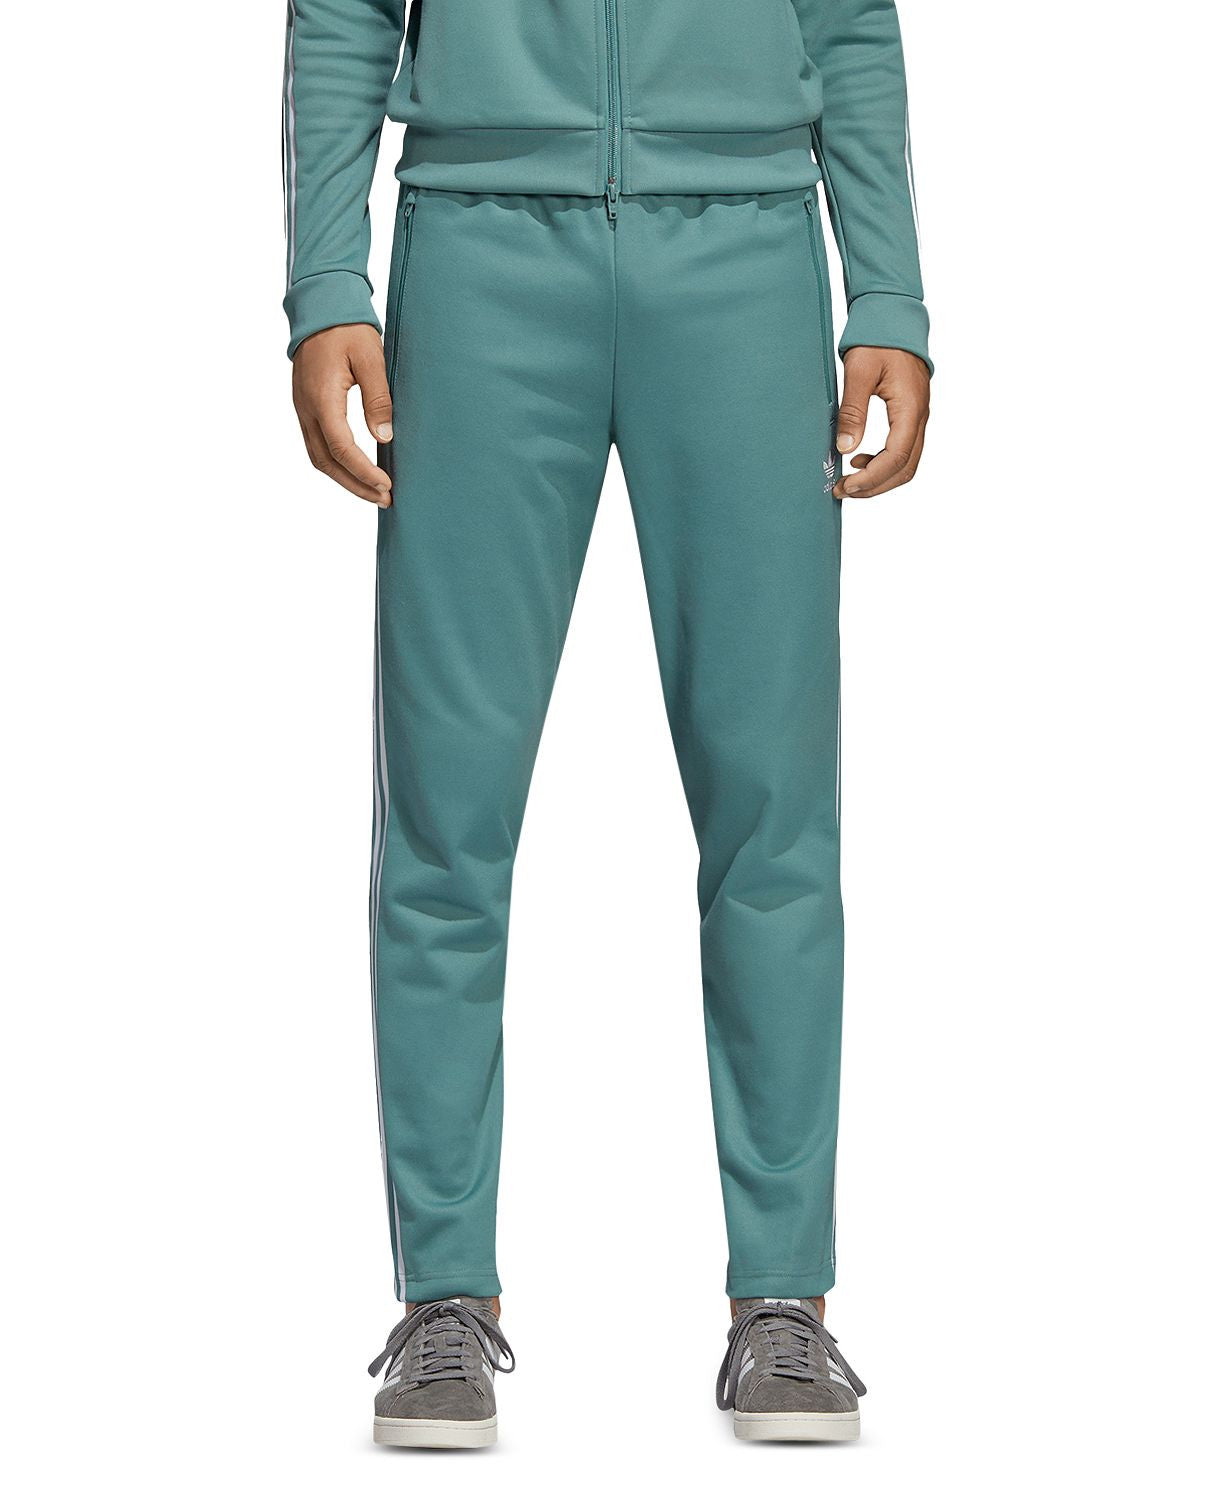 Adidas Originals Beckenbauer Track Pants Light/pastel Blue